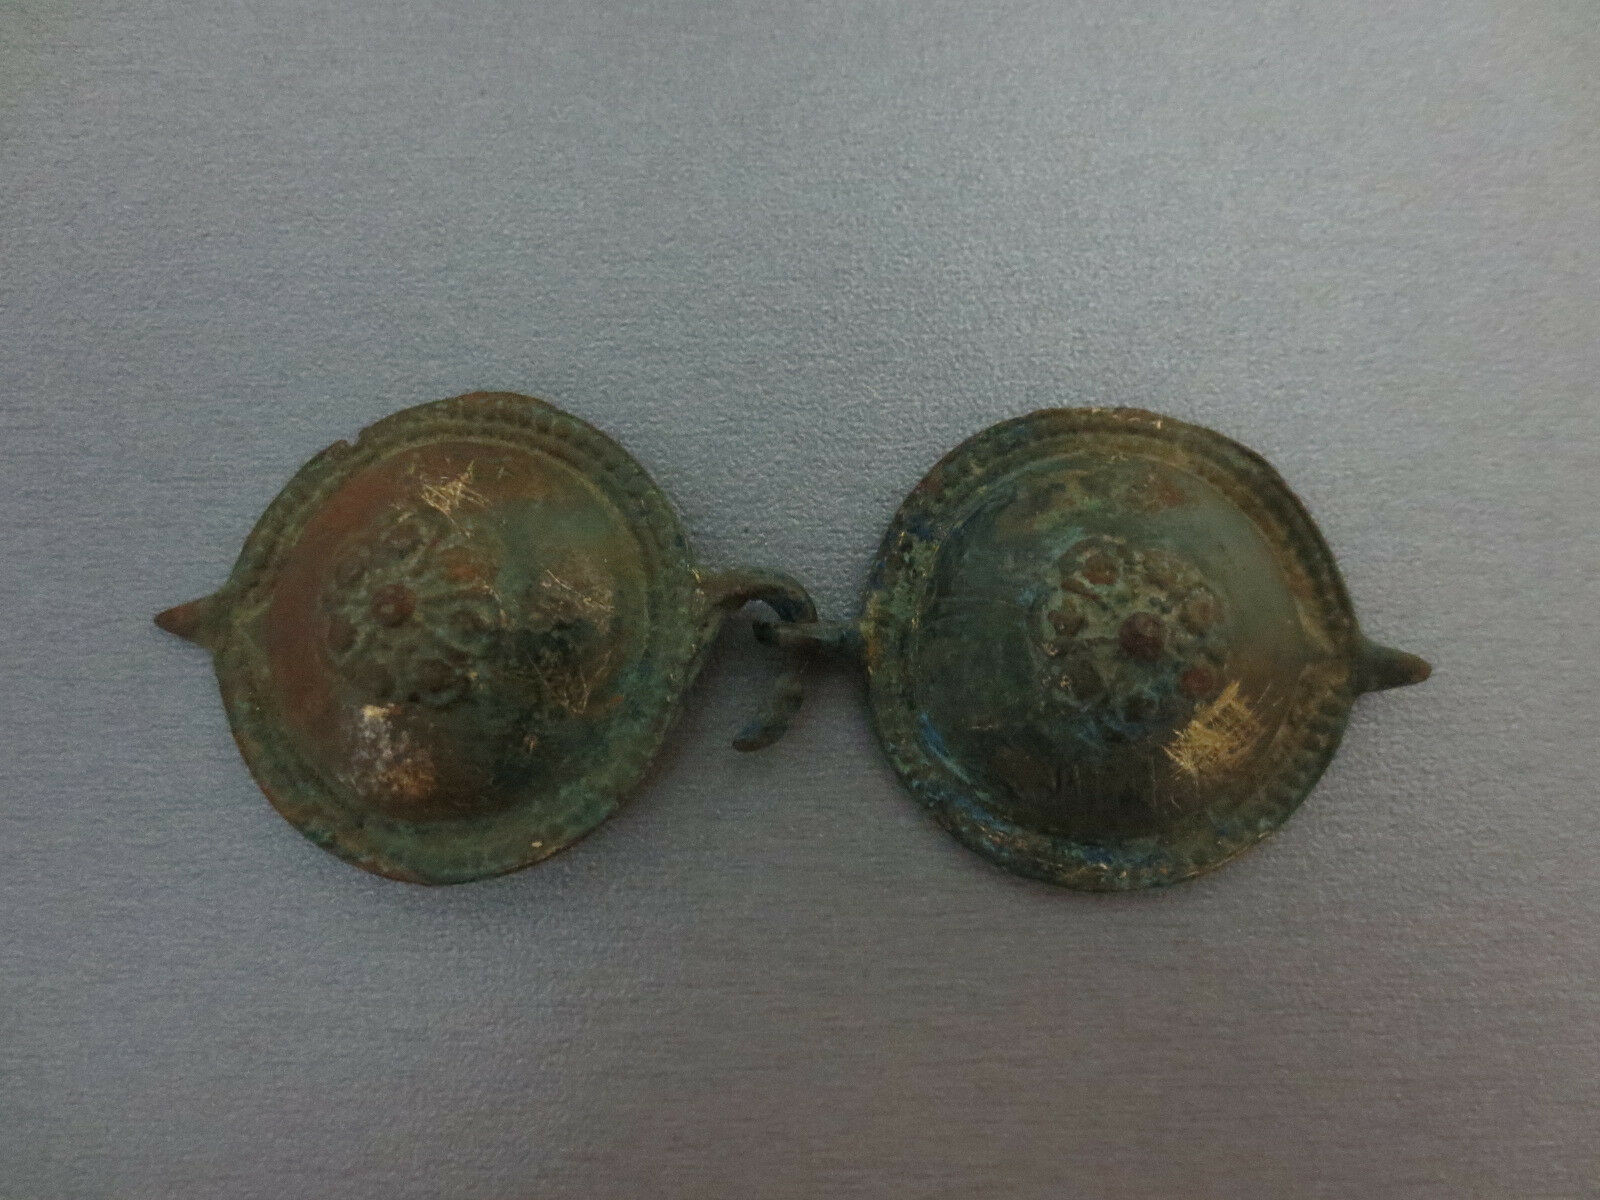 WOW!Gorgeous Antique small Buckle 18th Century GOLD-PLATED GILDED EXTREMELY RARE